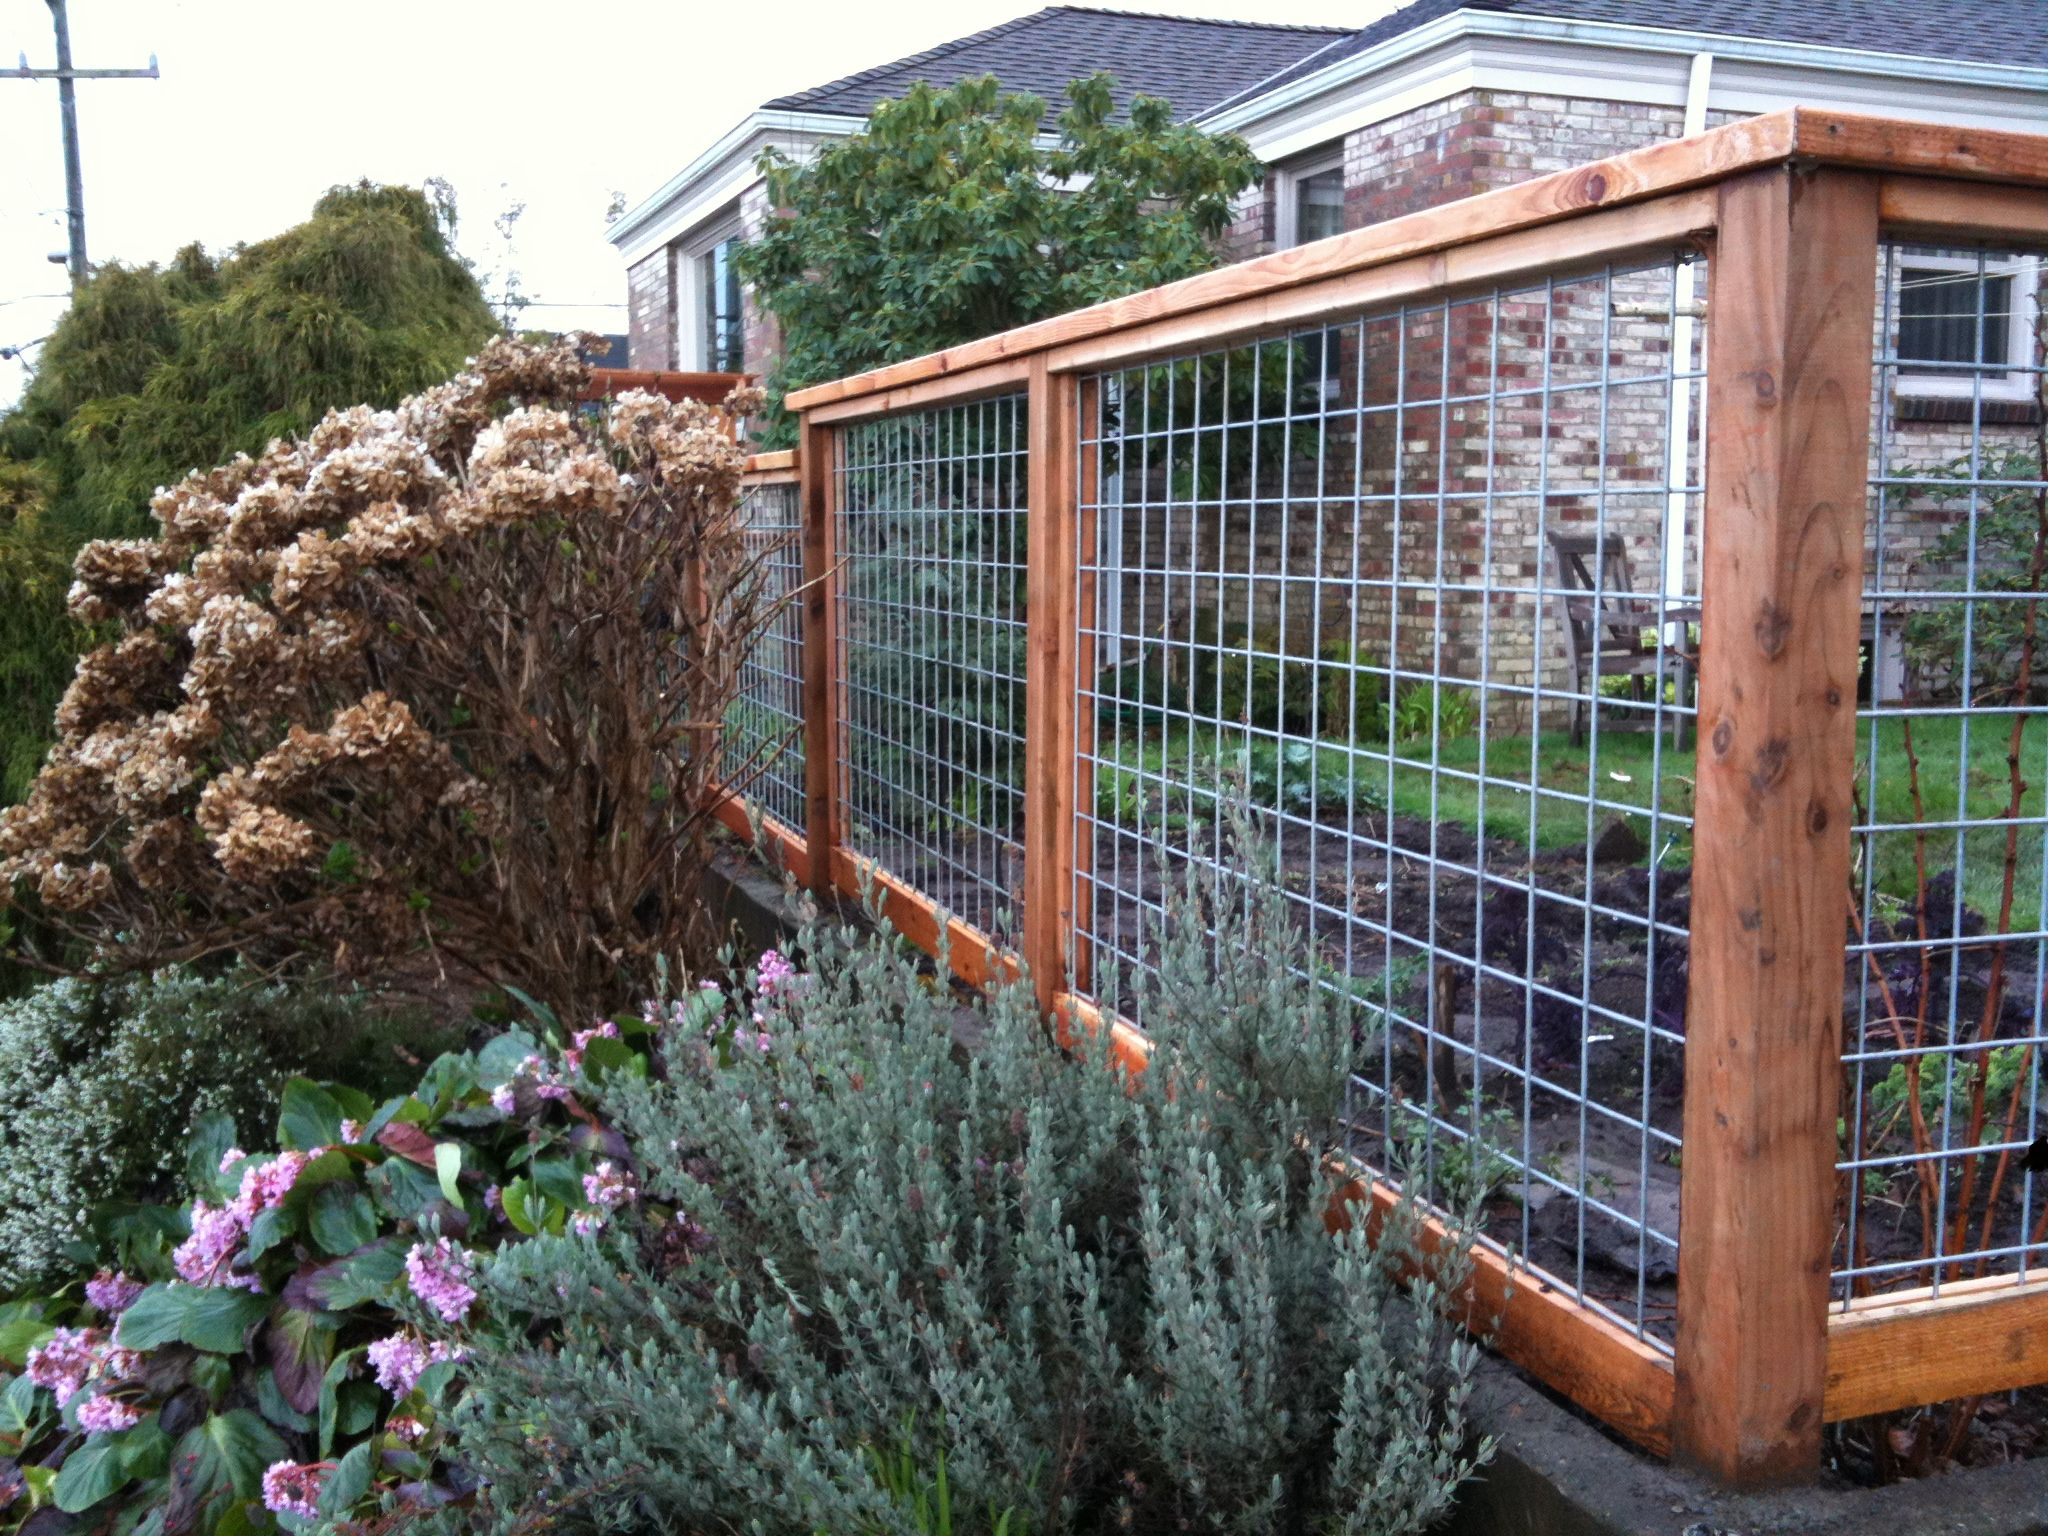 17 Awesome Hog Wire Fence Design Ideas For Your Backyard | Garden ...